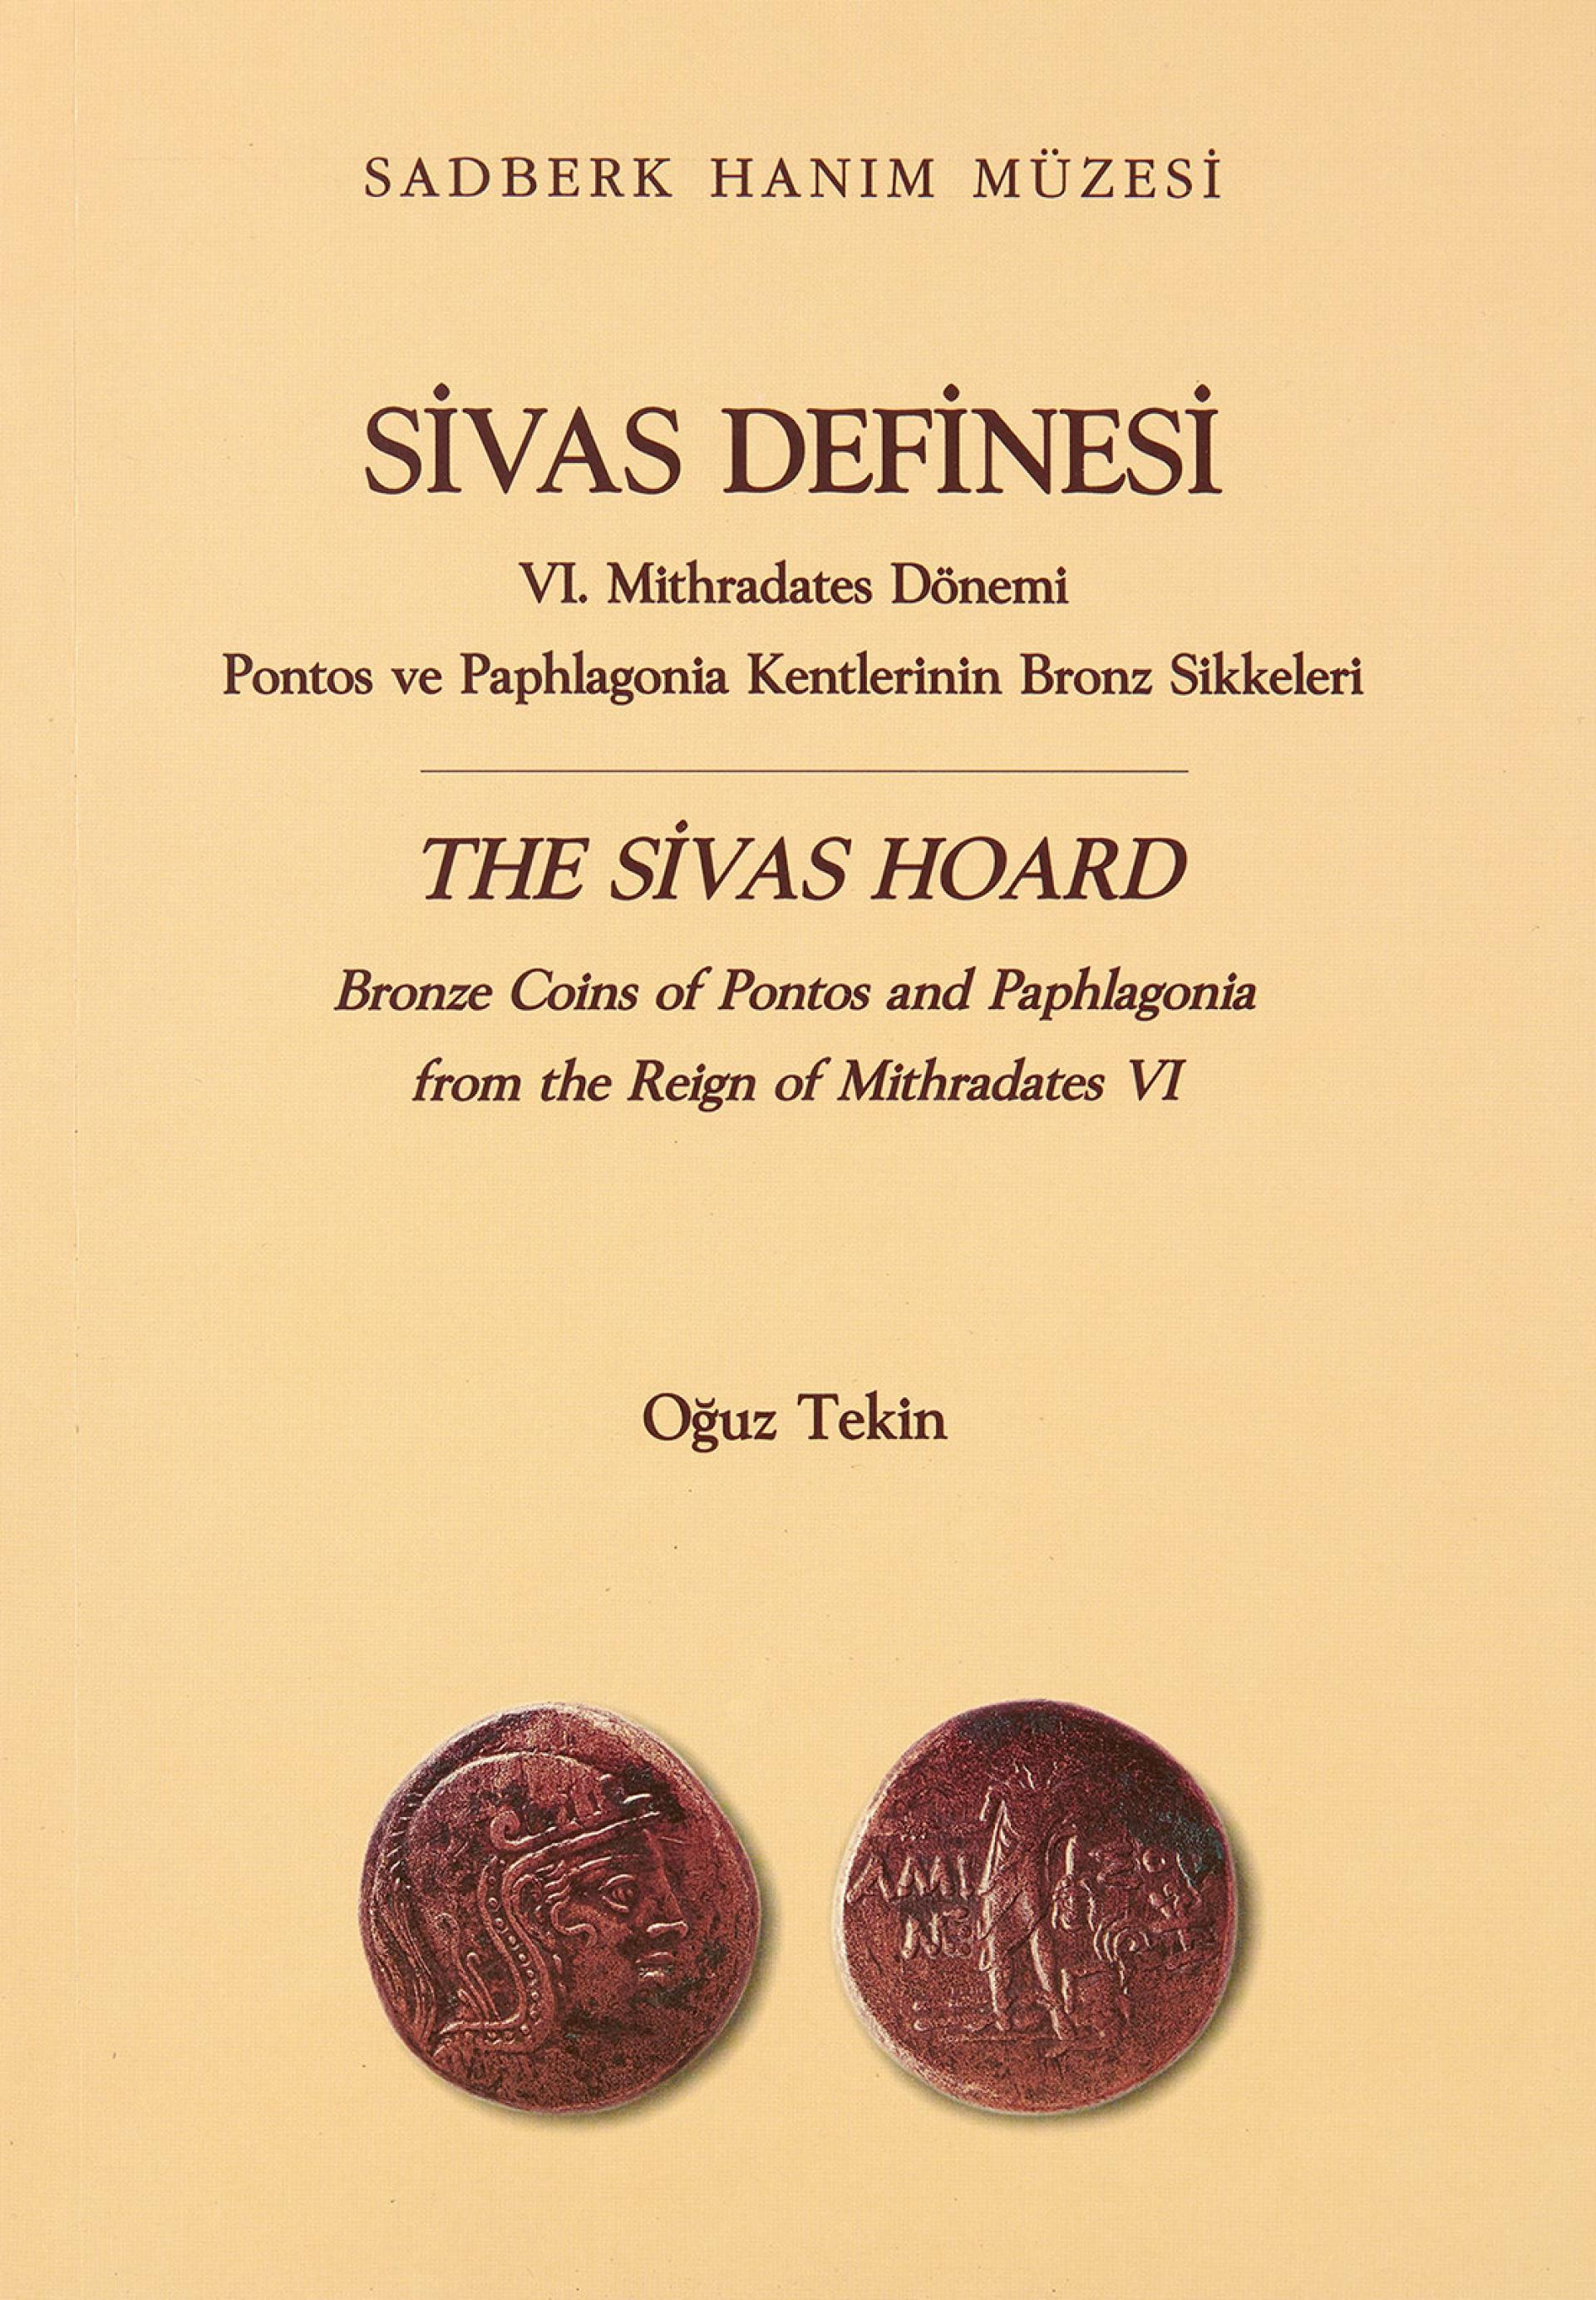 The Sivas Hoard – Bronze Coins of Pontos and Paphlagonia from the Reign of Mithradates VI - BOOKS - Sadberk Hanım Museum